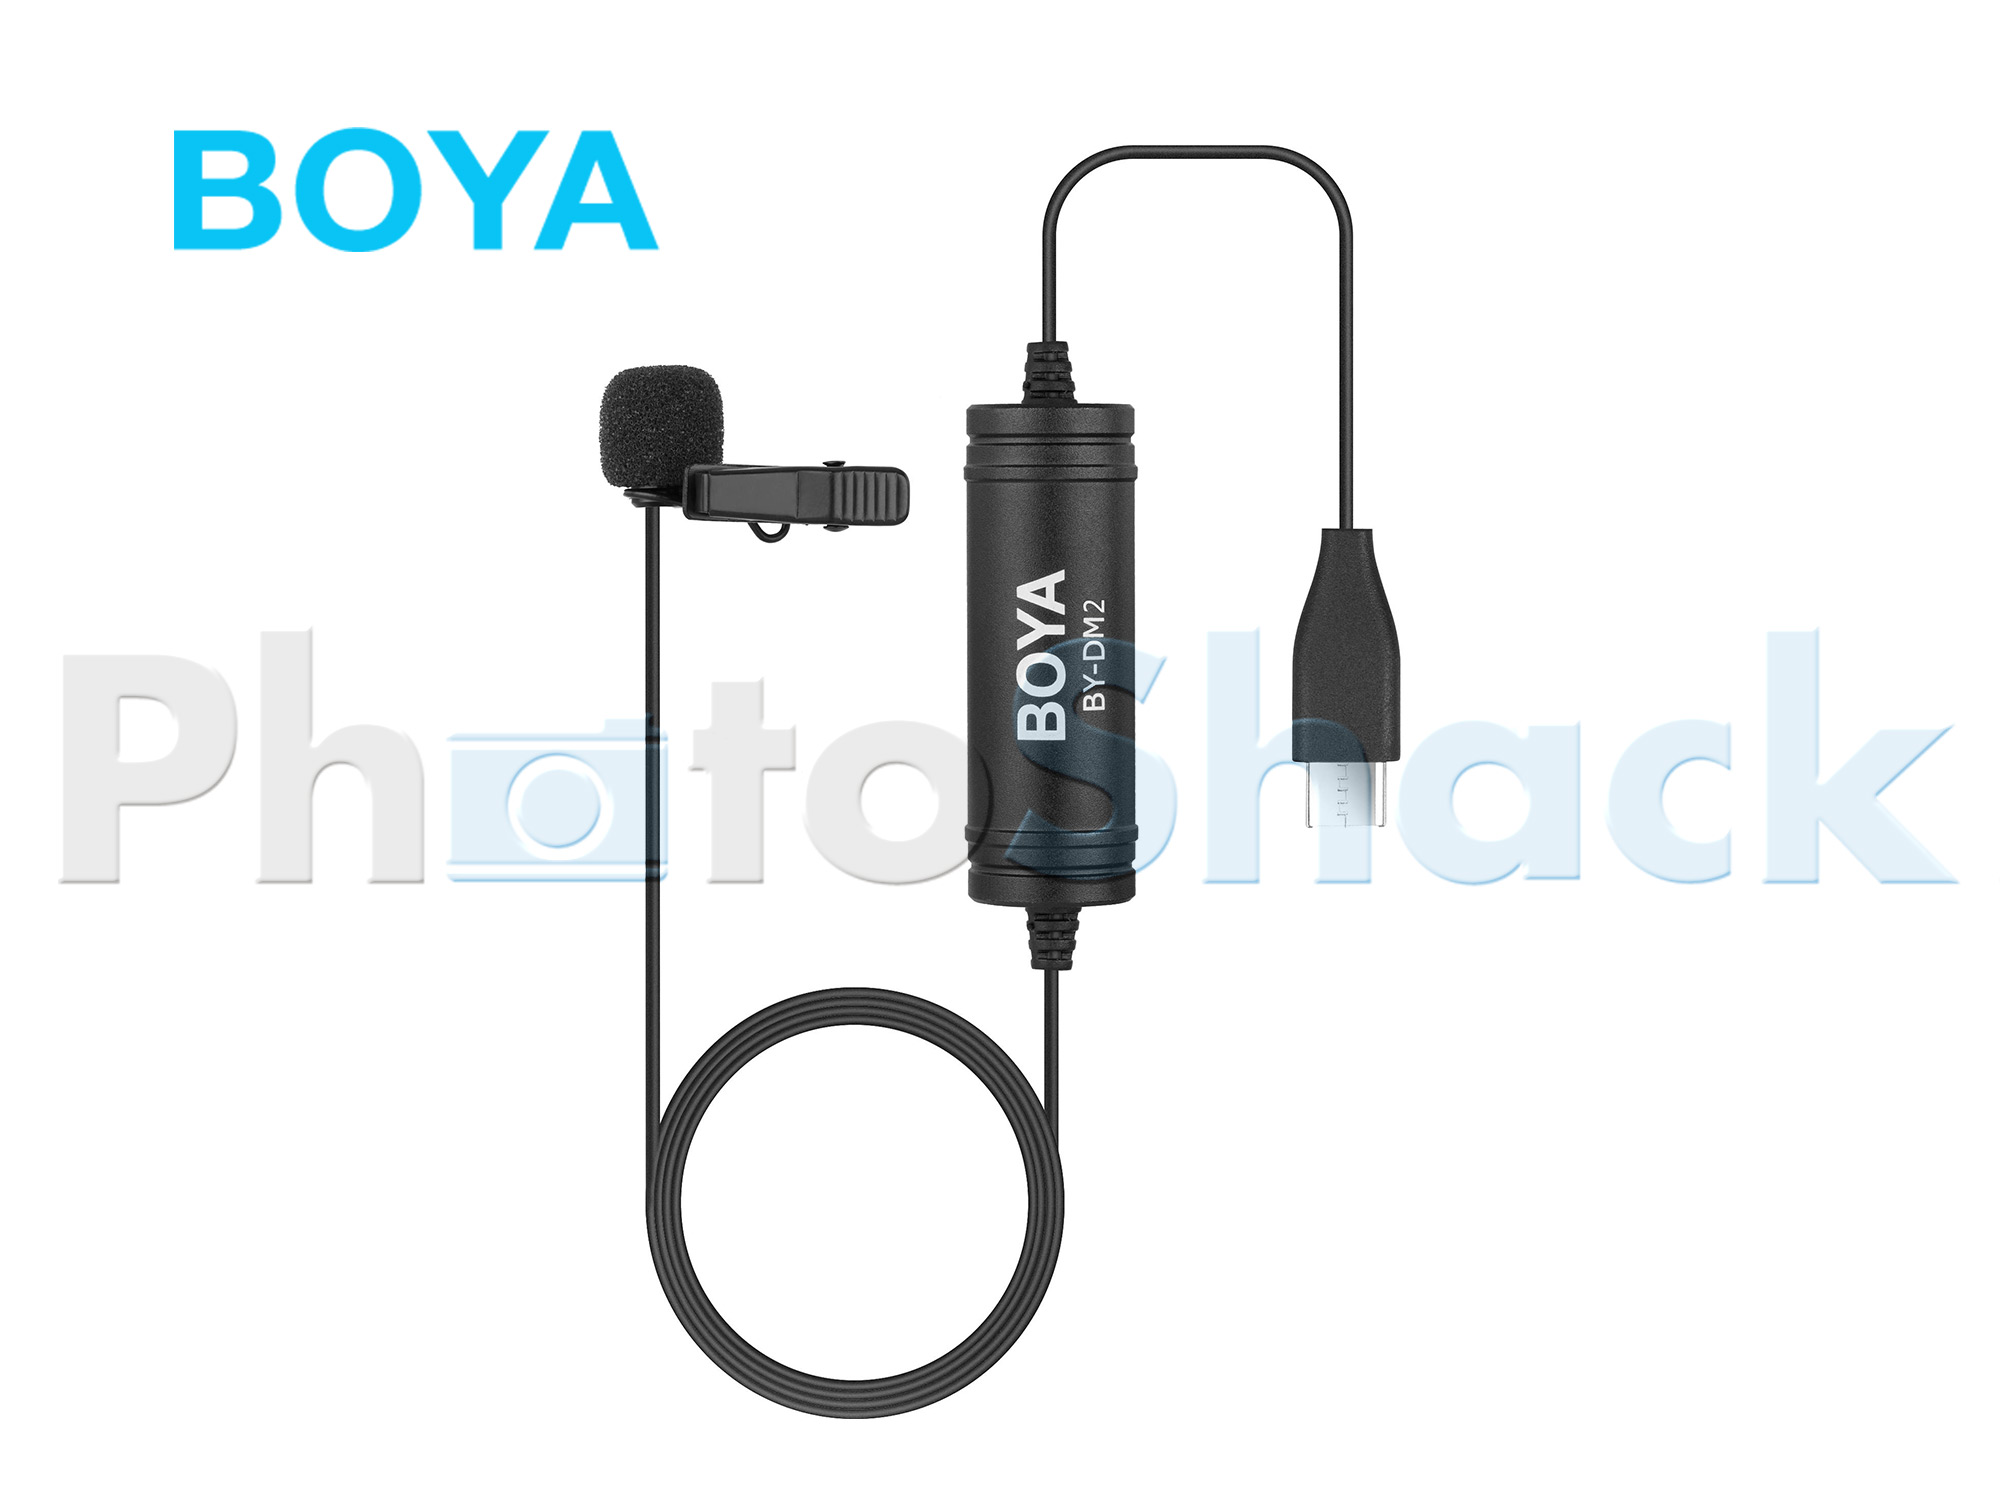 BOYA BY-DM2 Digital Lavalier Microphone for Android Devices